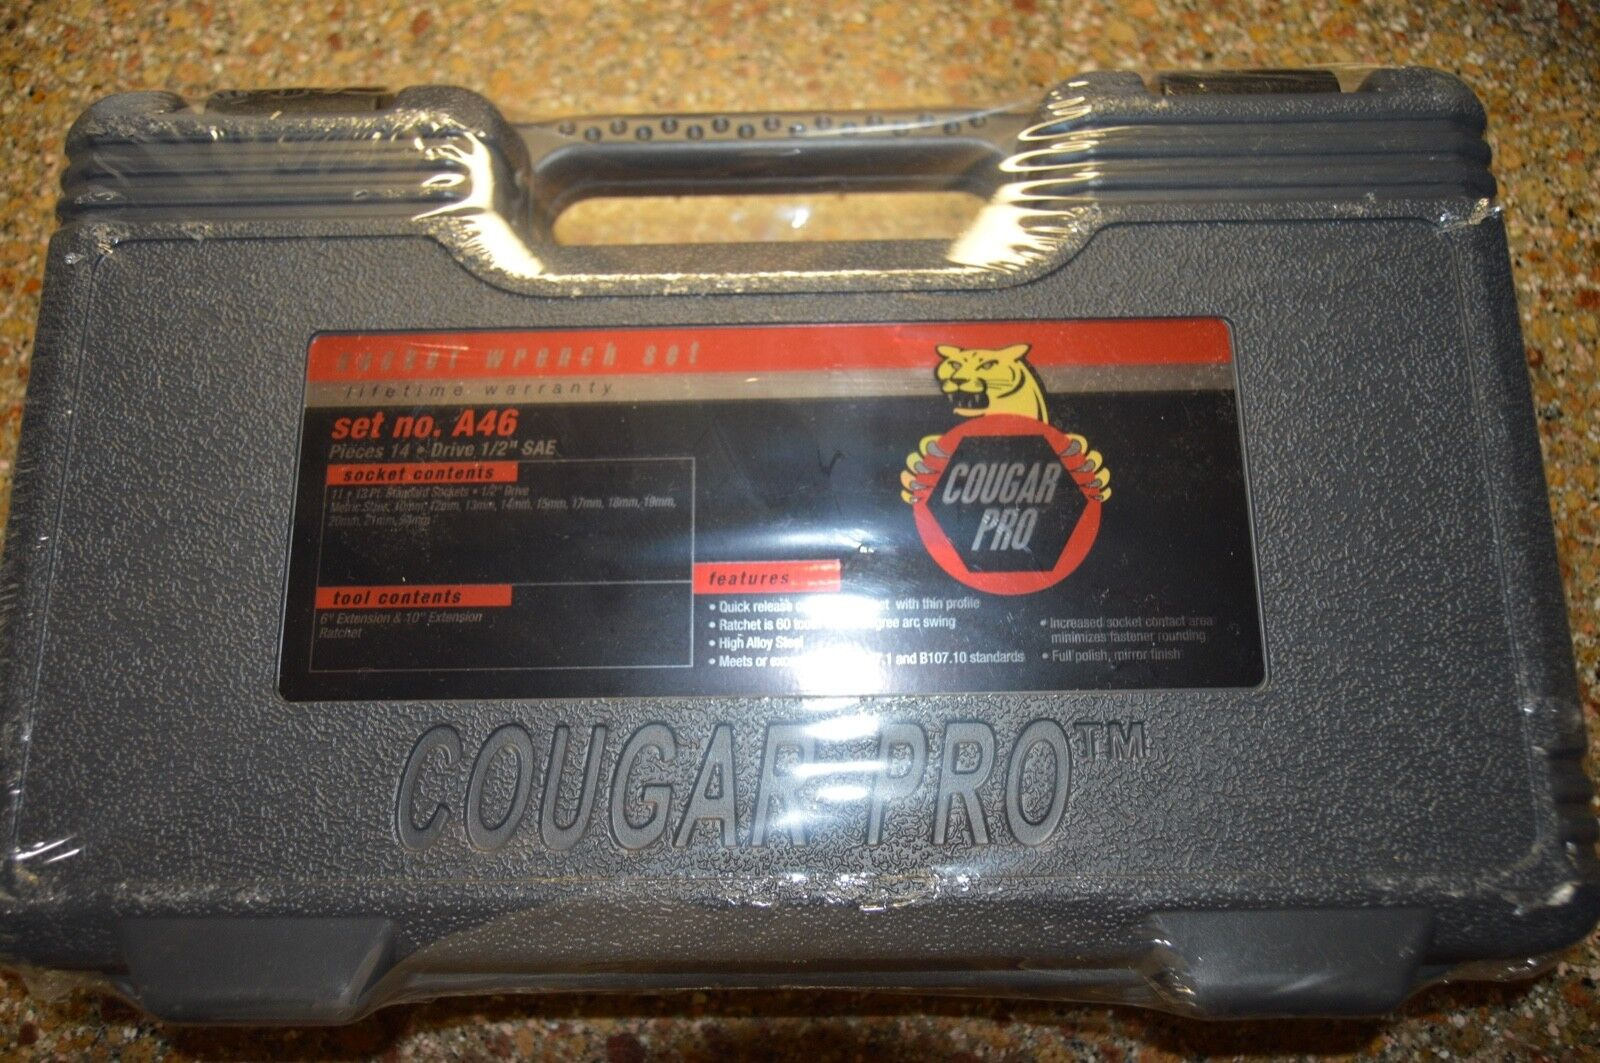 Wright Tool Cougar A46 10 to 24 Millimeter Metric Socket Set